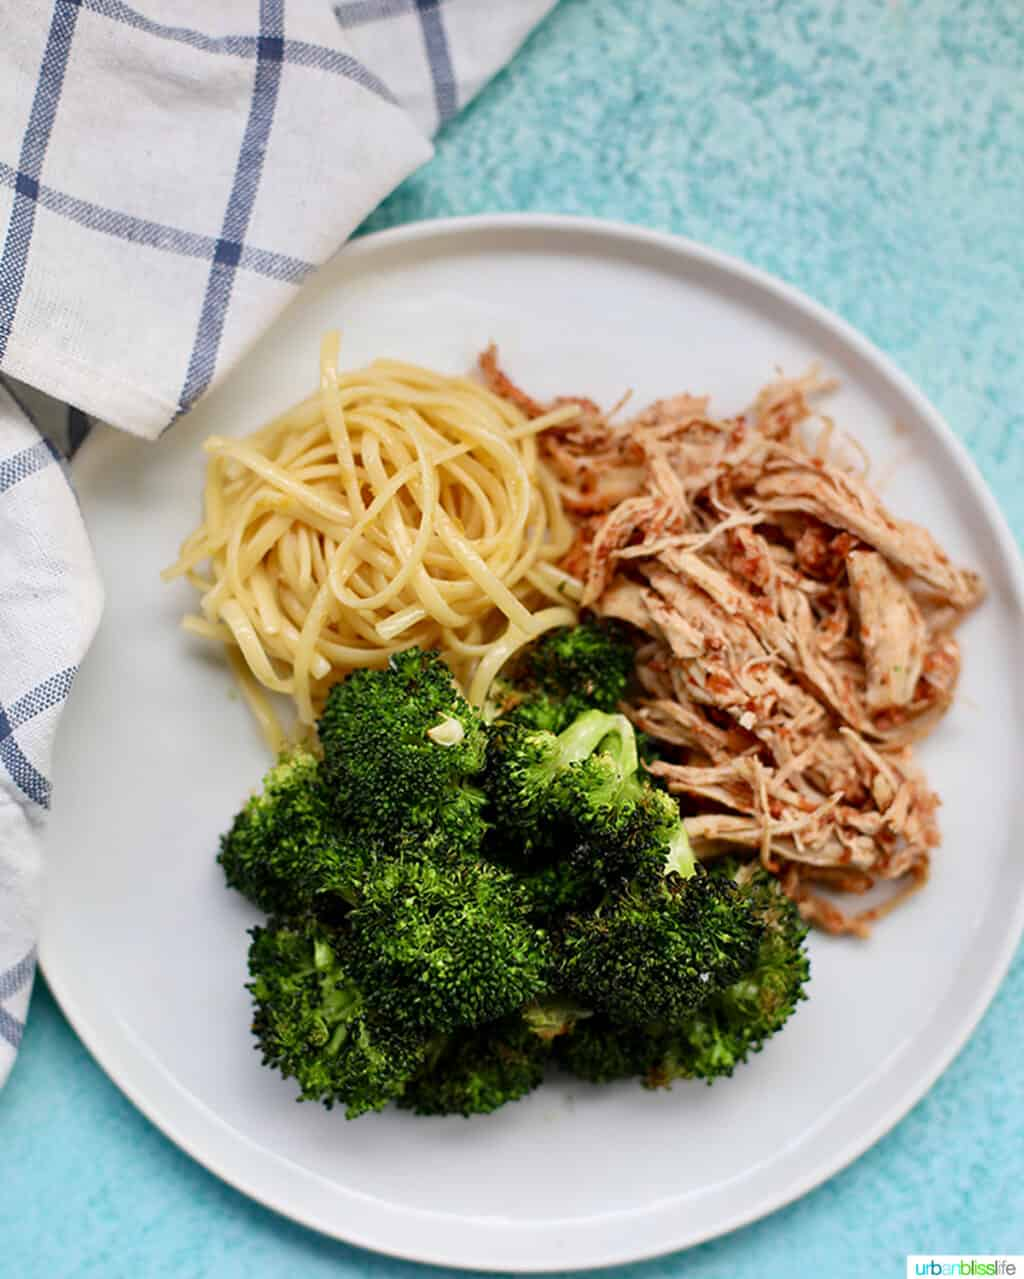 broccoli with pasta and shredded chicken